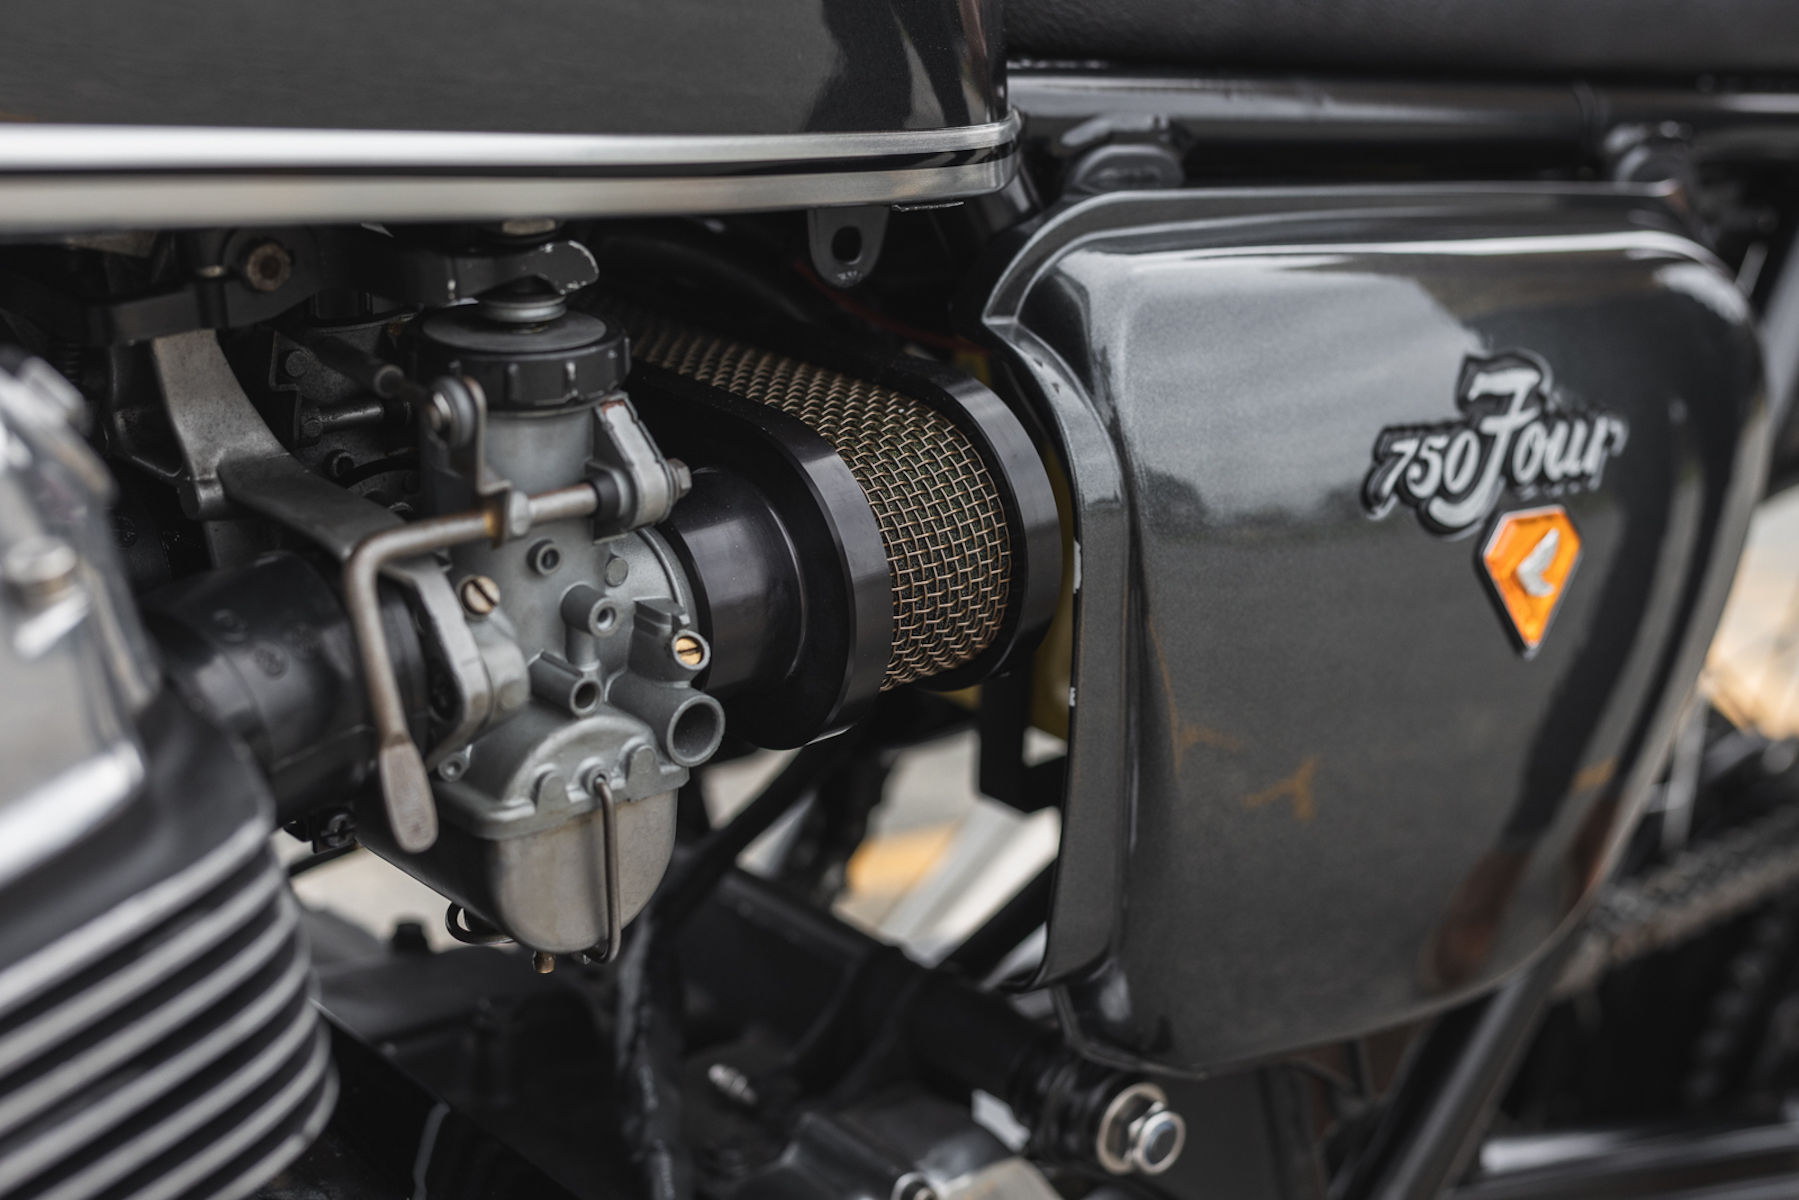 A close-up of a Honda CB750, focusing on the body and chassis of the bike.